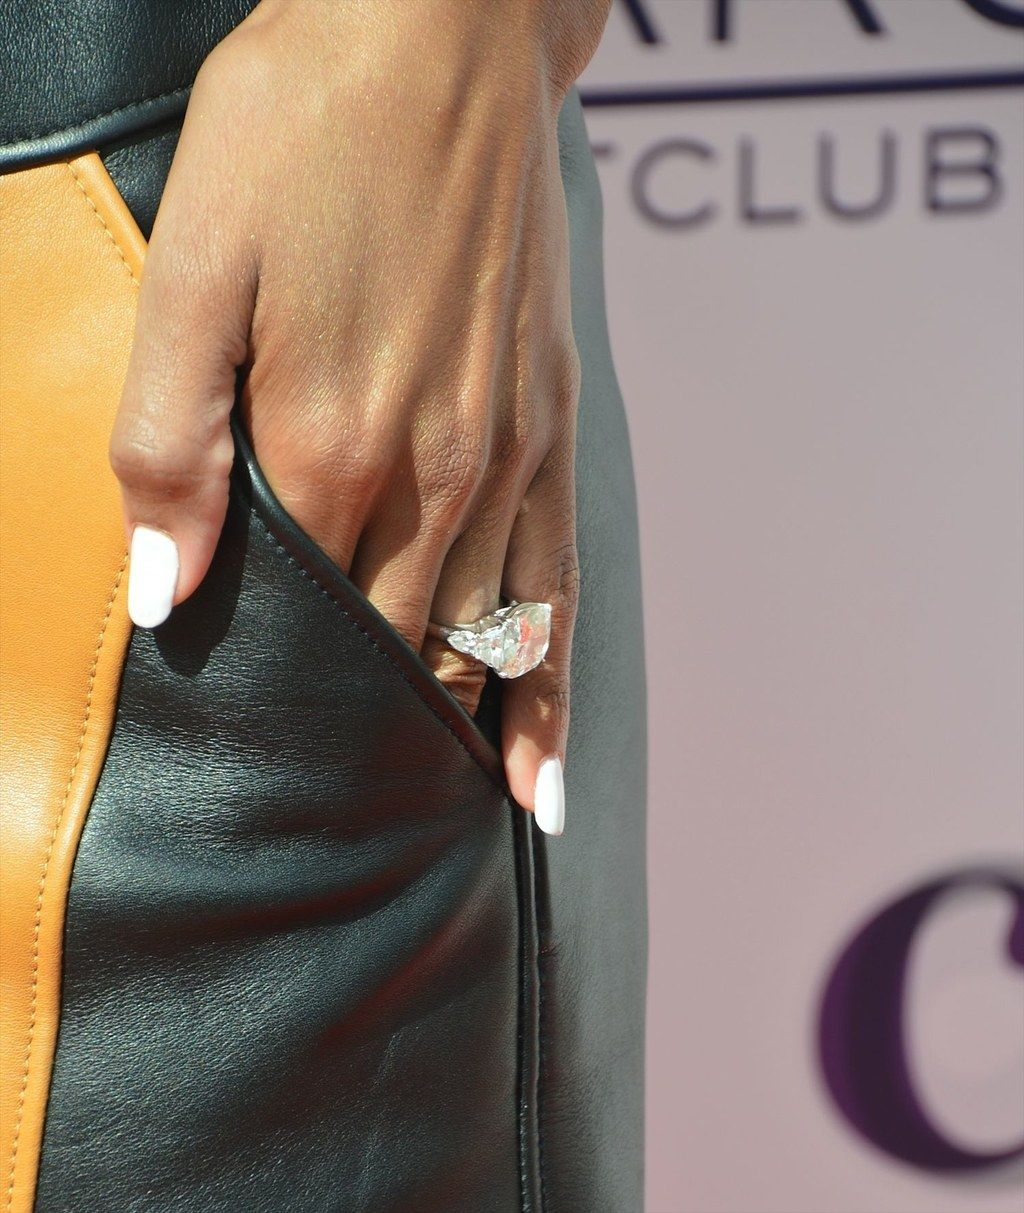 Ciaras Engagement Ring Here Are Photos of Her 16Carat Diamond